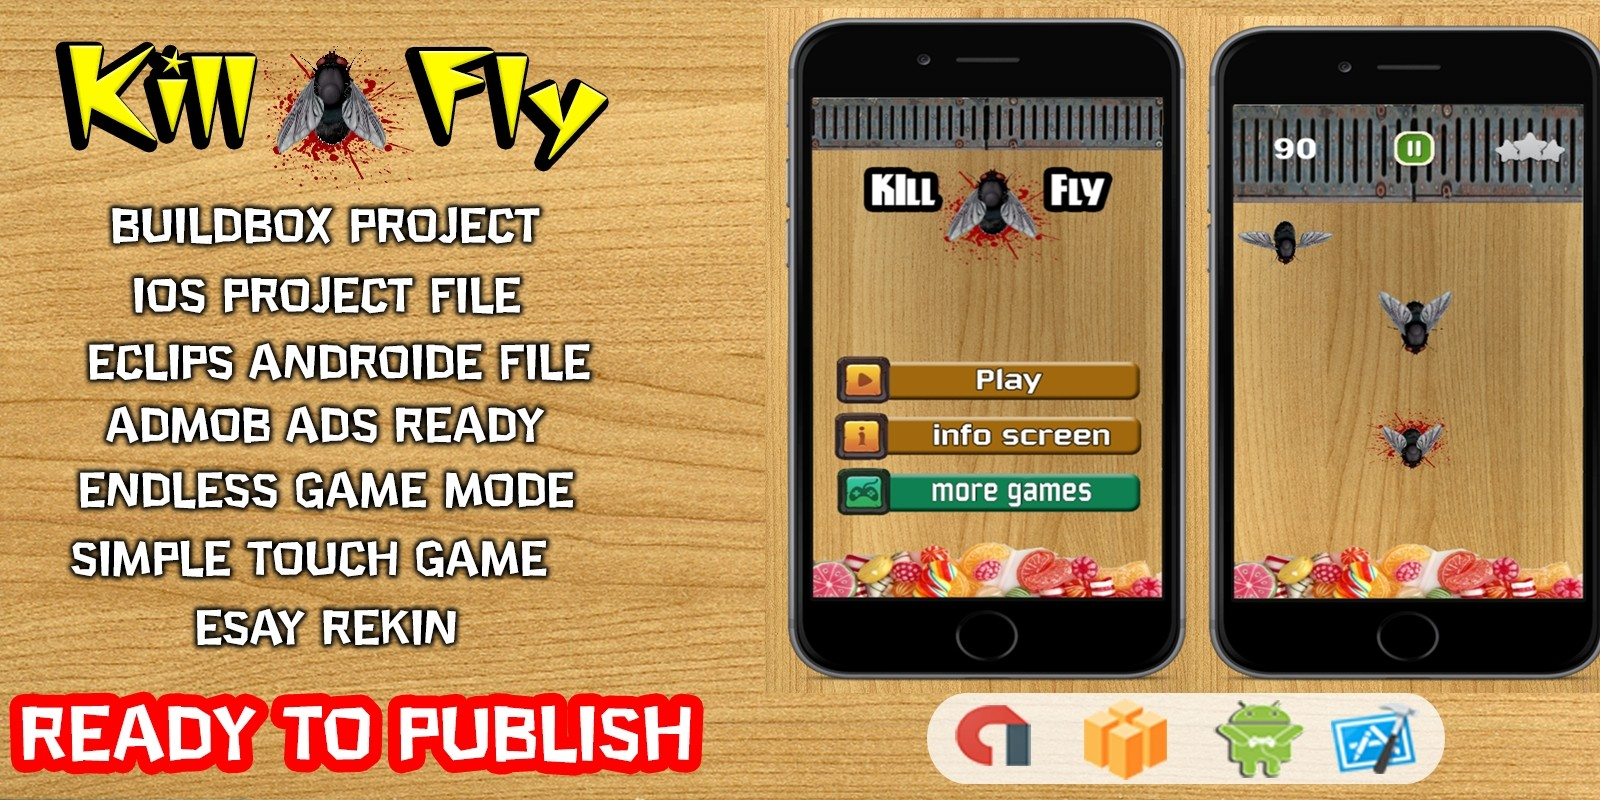 Kill Fly - Buildbox Template